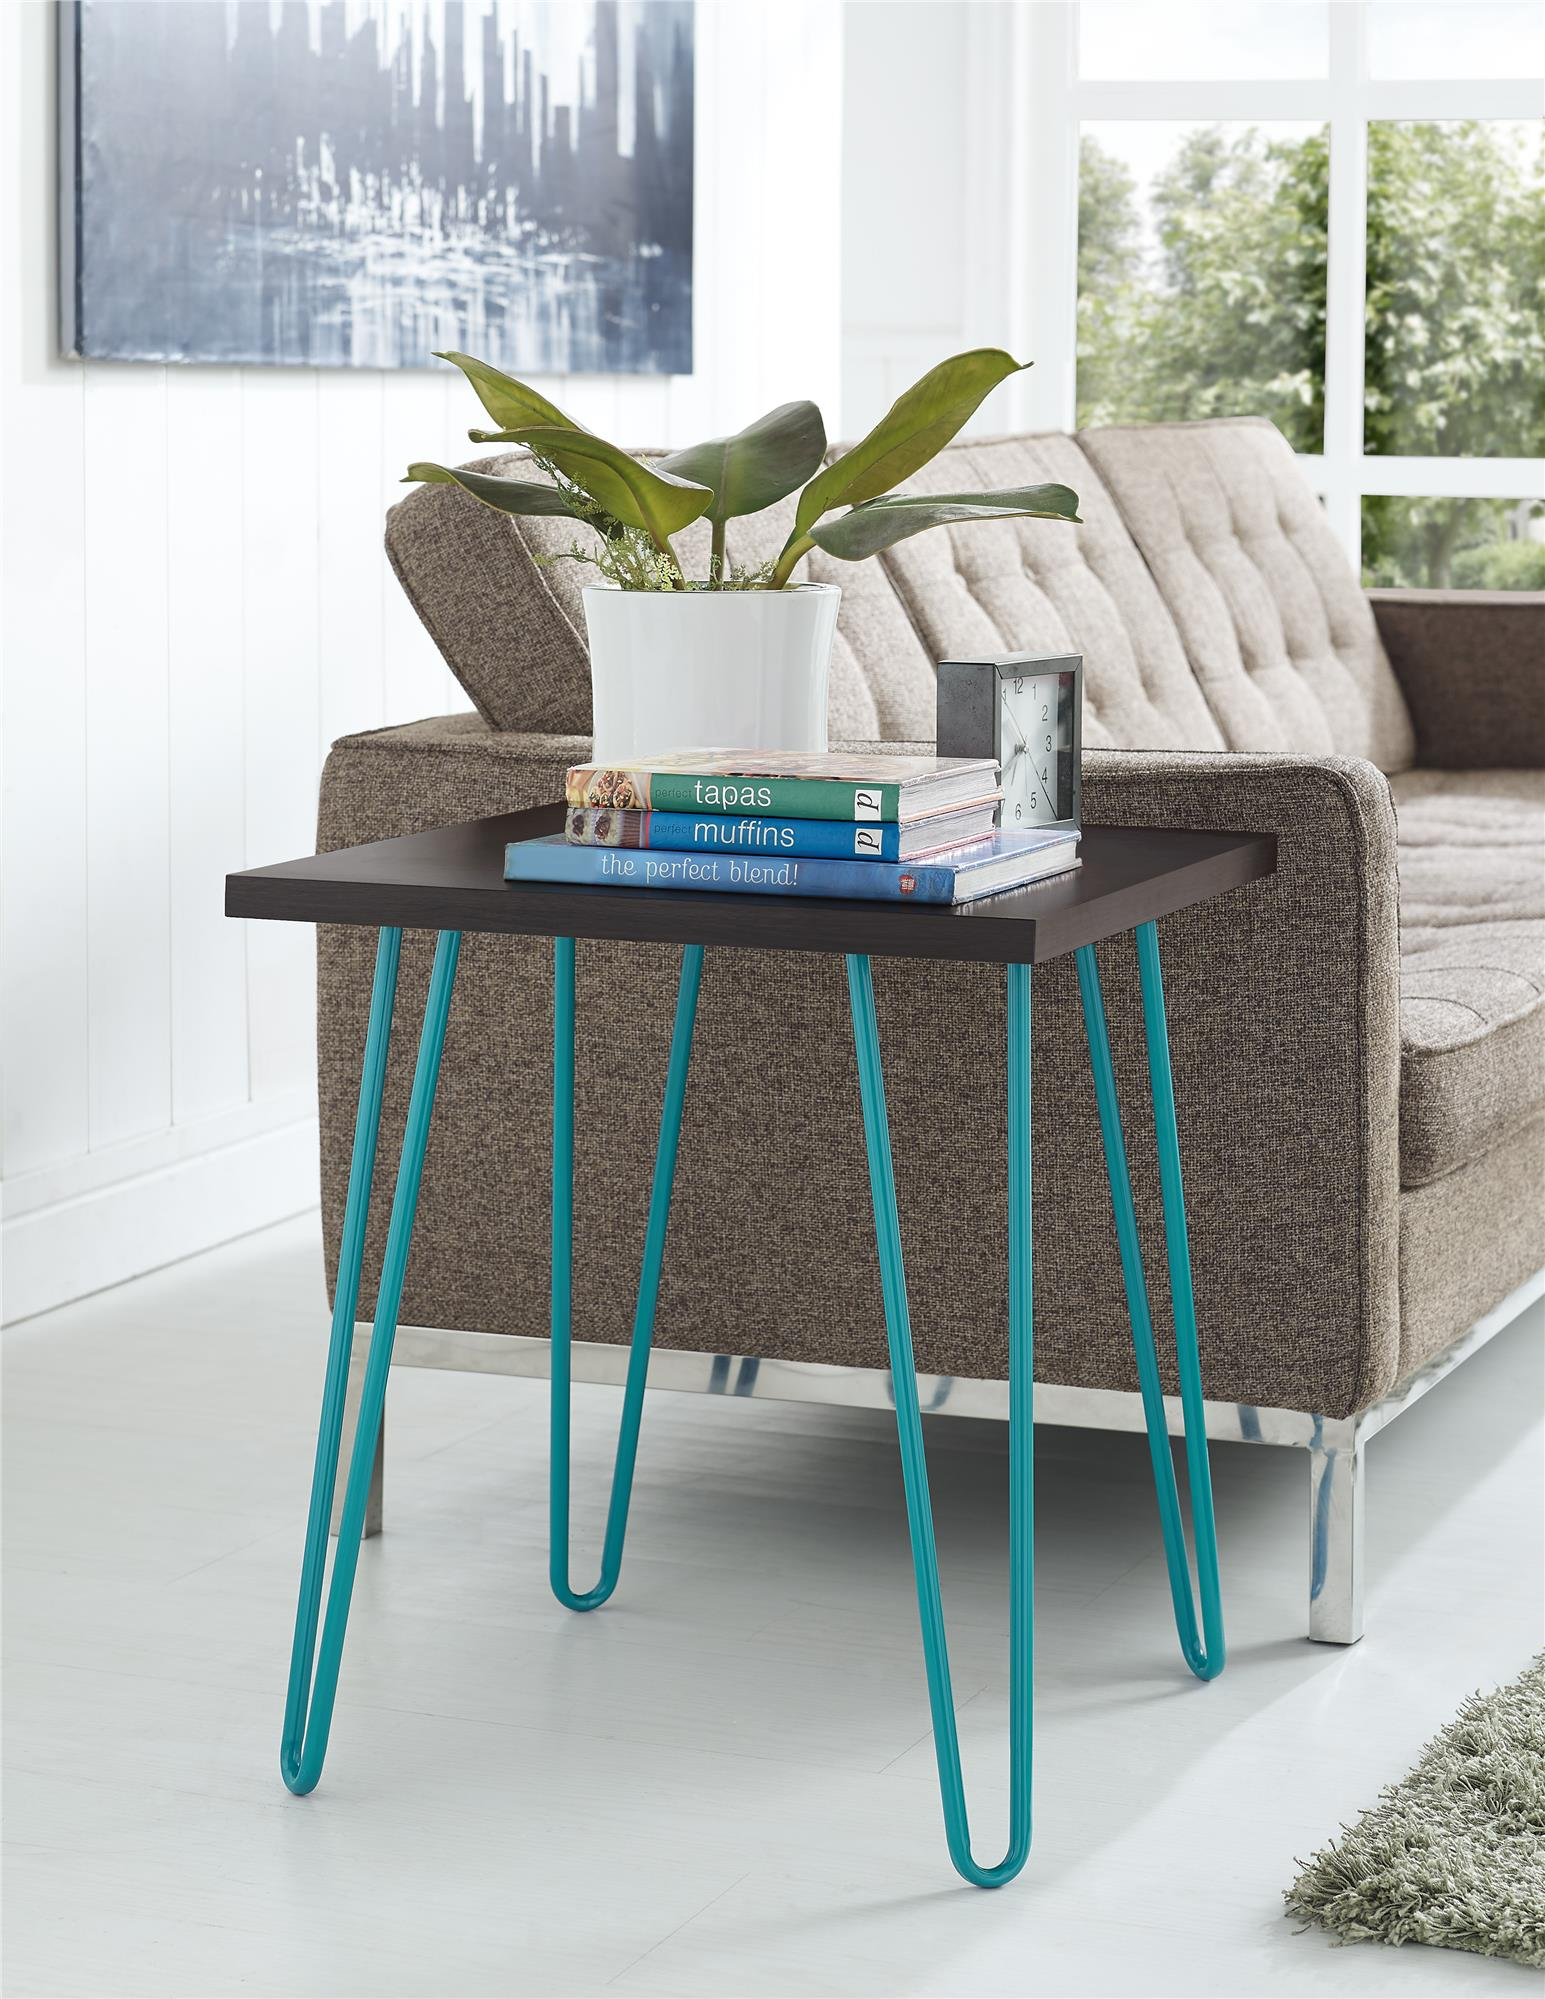 ameriwood furniture owen retro end table espresso teal source turquoise accent target long living room side designs skinny ikea linen storage boxes centerpiece decor small square